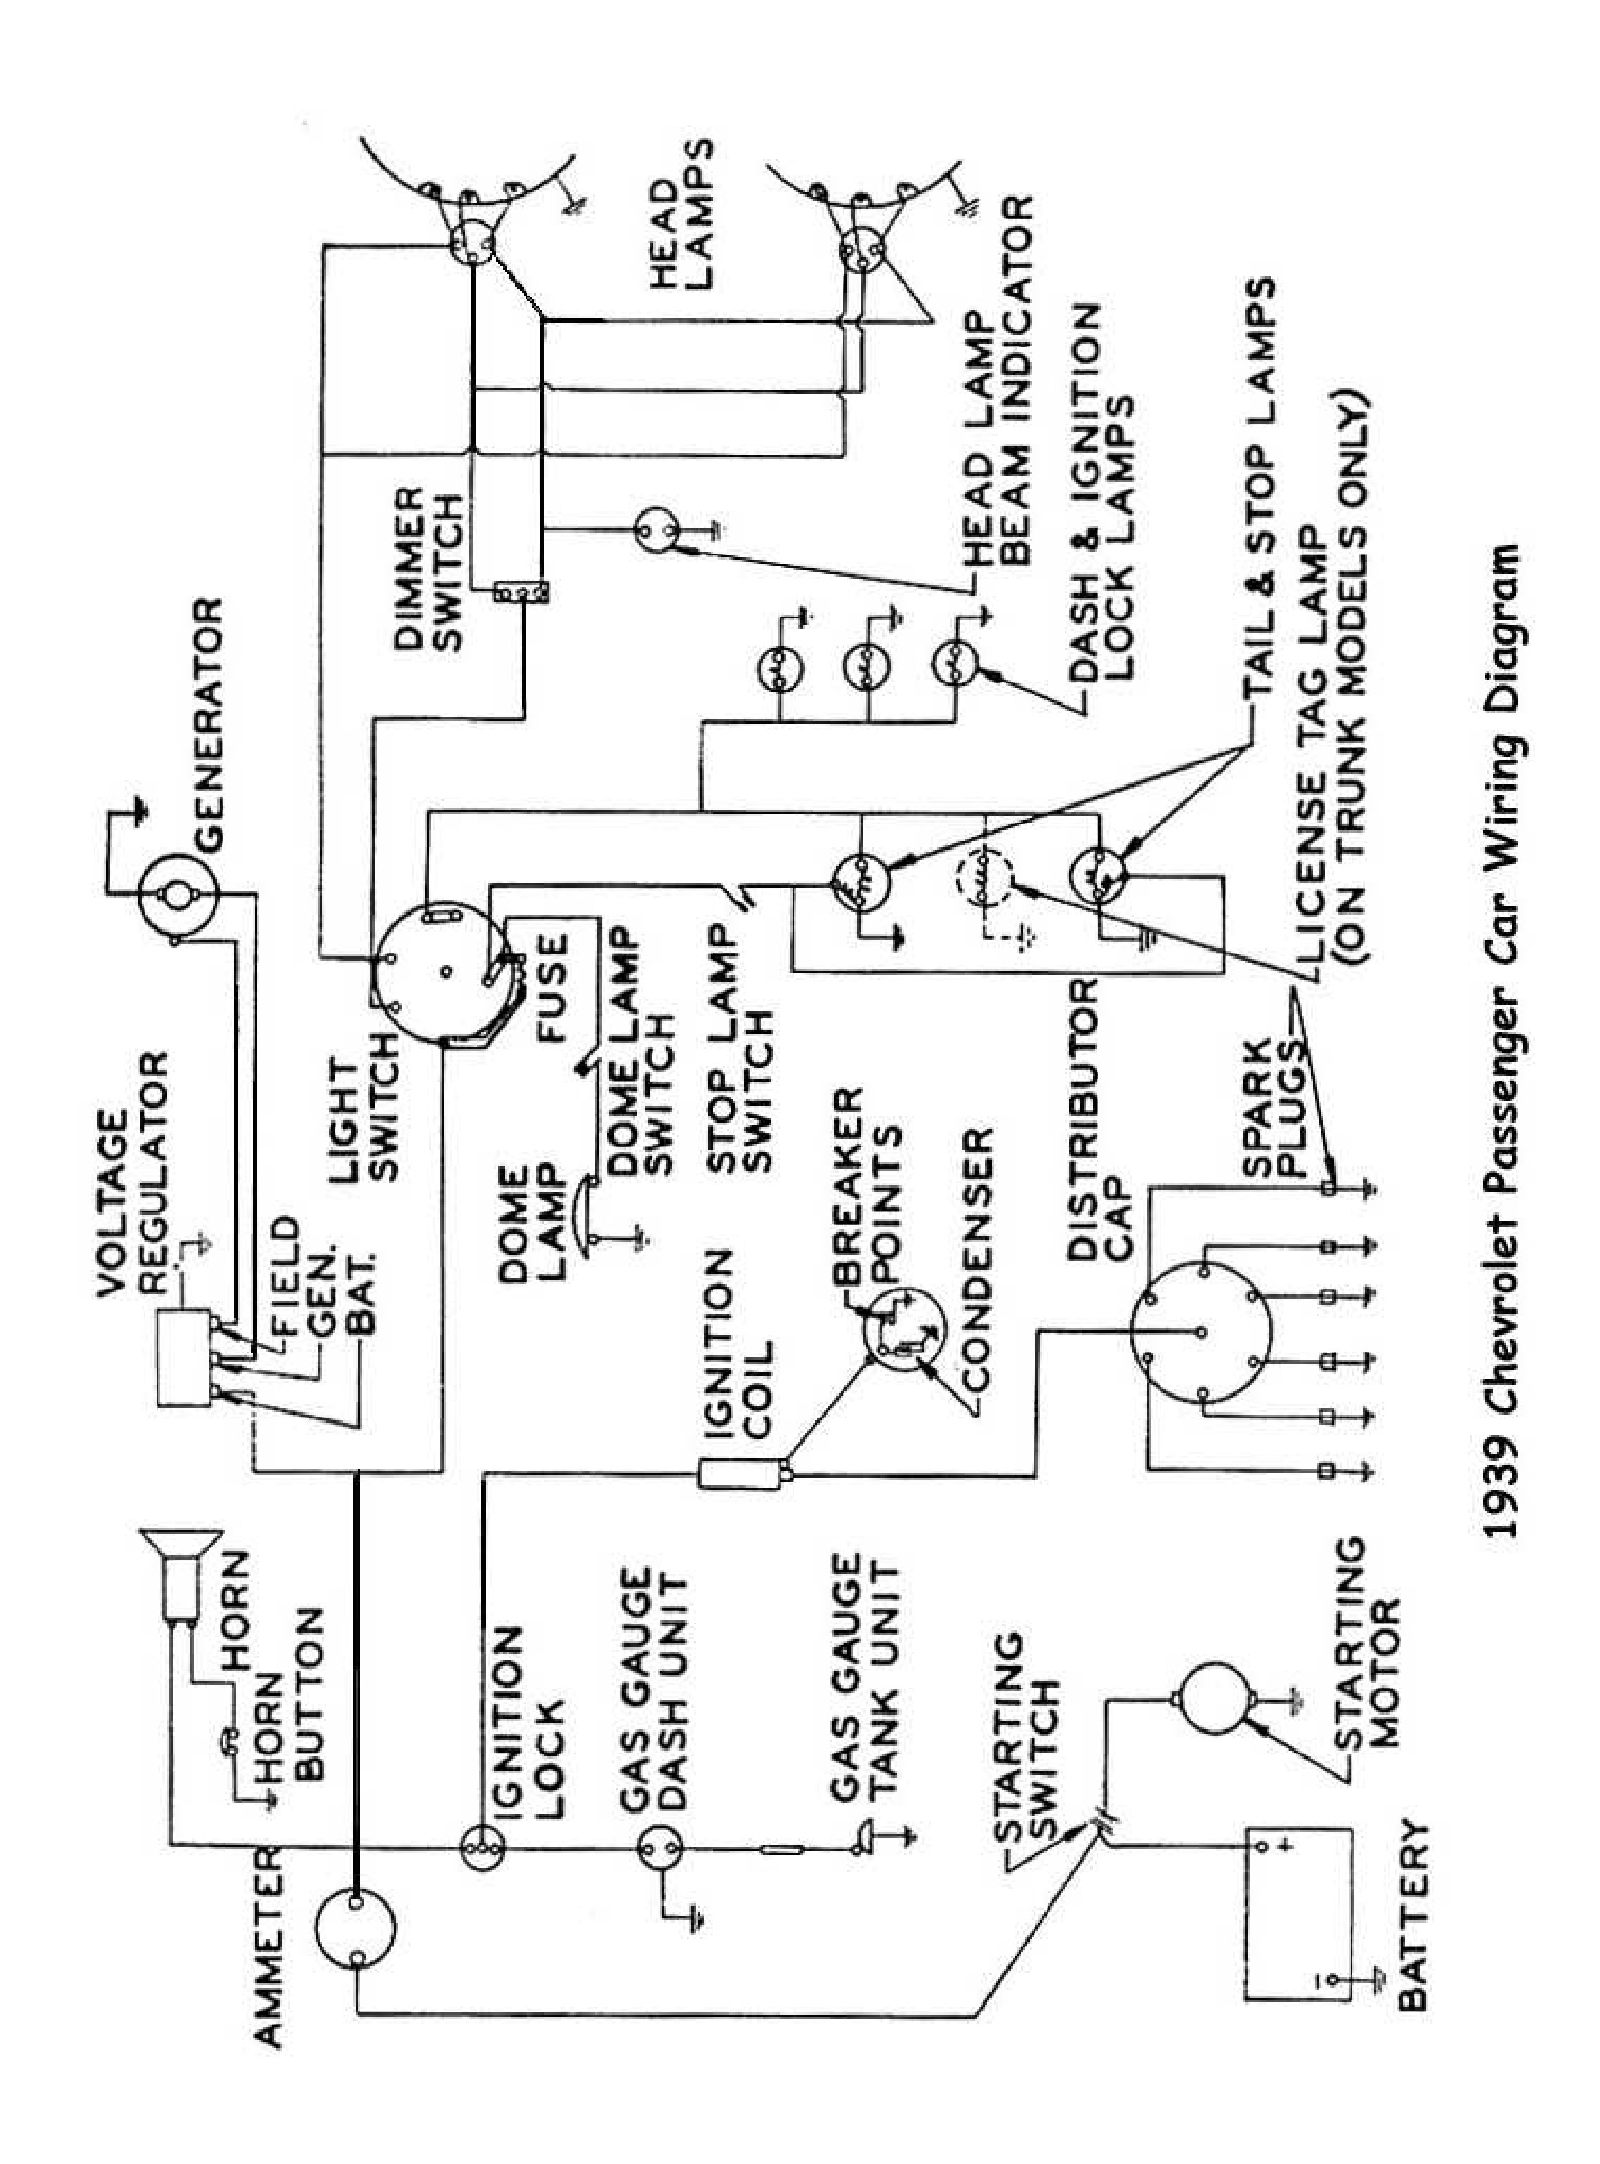 39car chevy wiring diagrams diagram ignition wire 2005 vulcan 1600 at soozxer.org